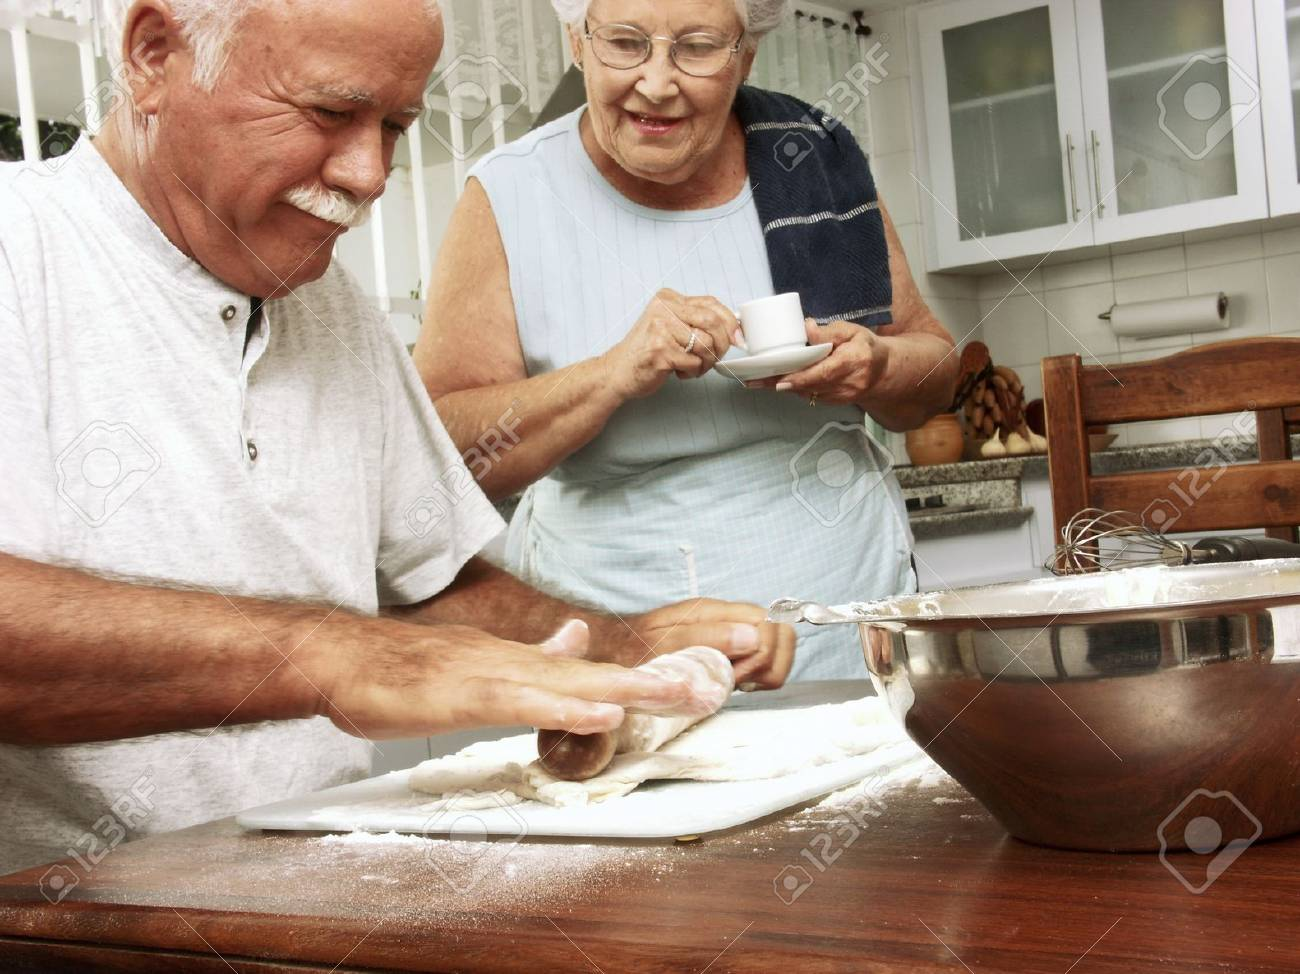 An elderly couple preparing food in the kitchen Stock Photo - 22542519